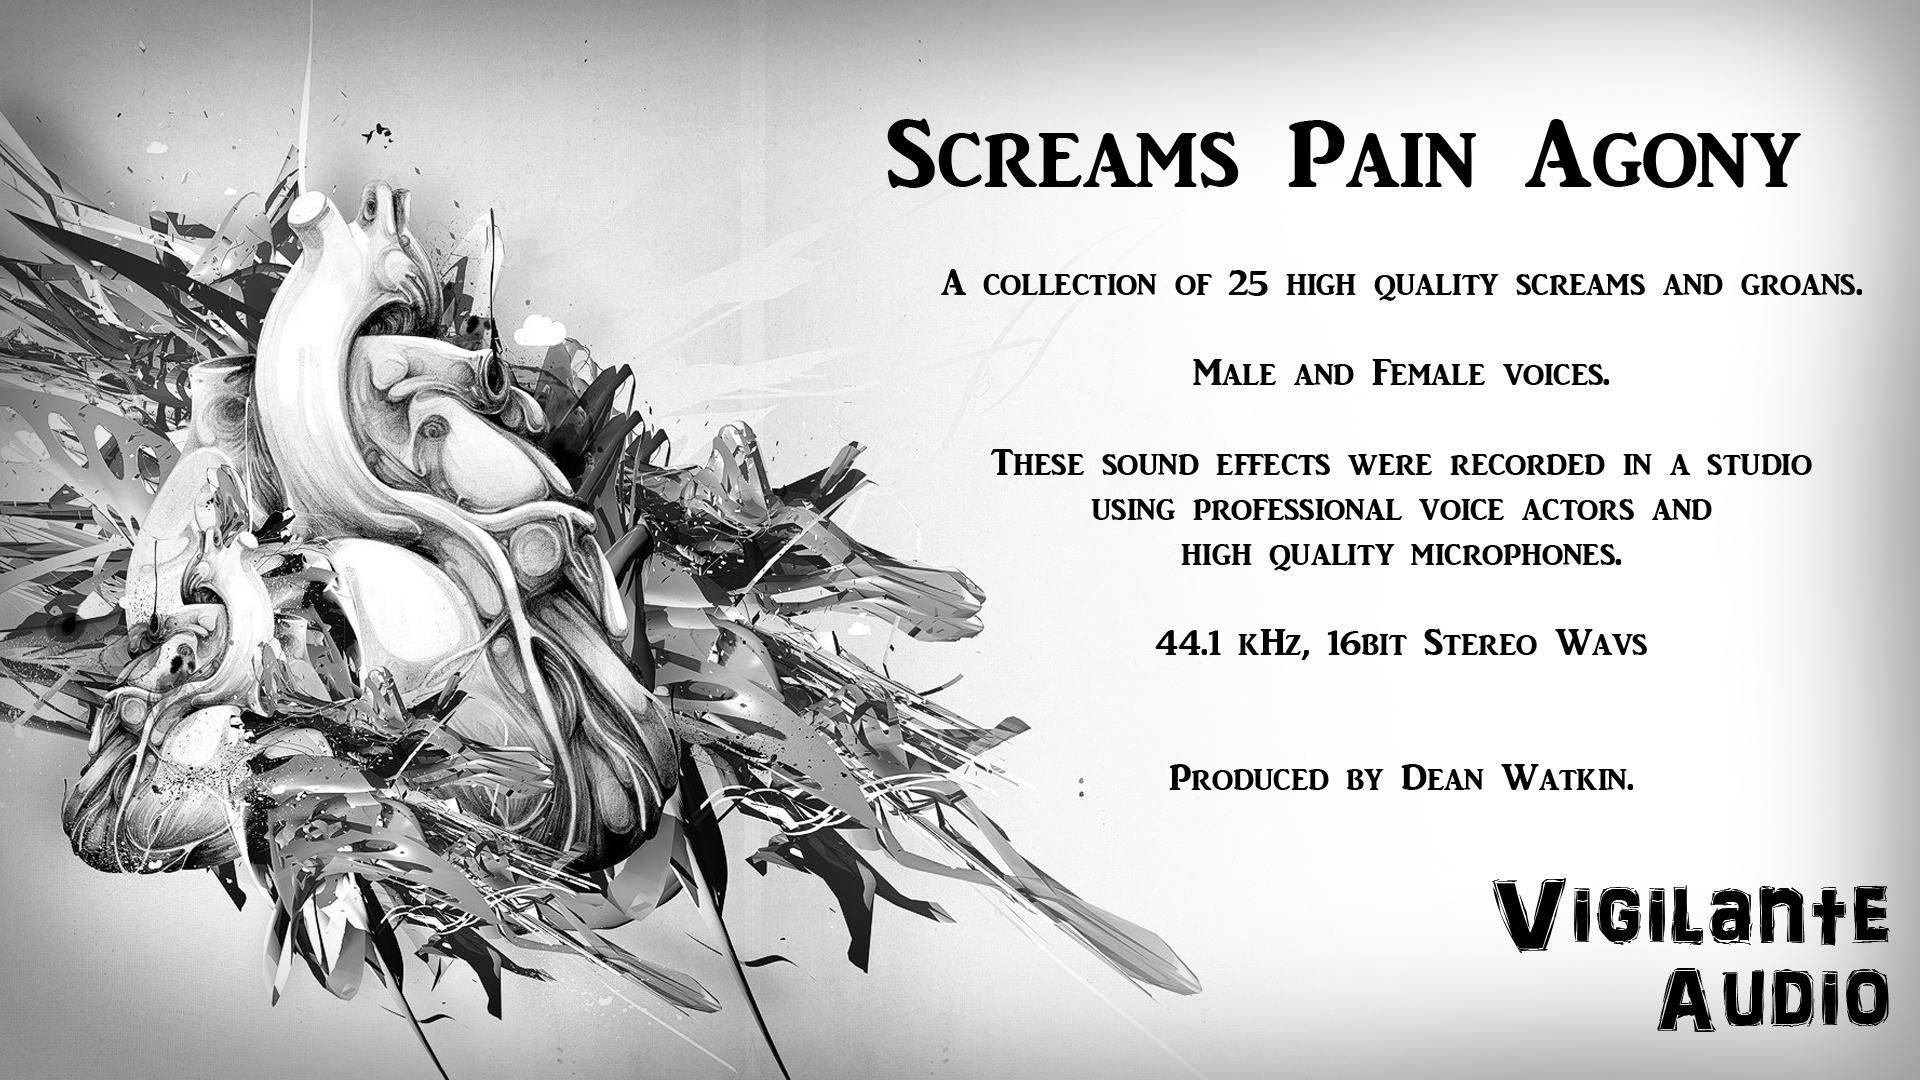 Screams Pain Agony by Vigilante Audio